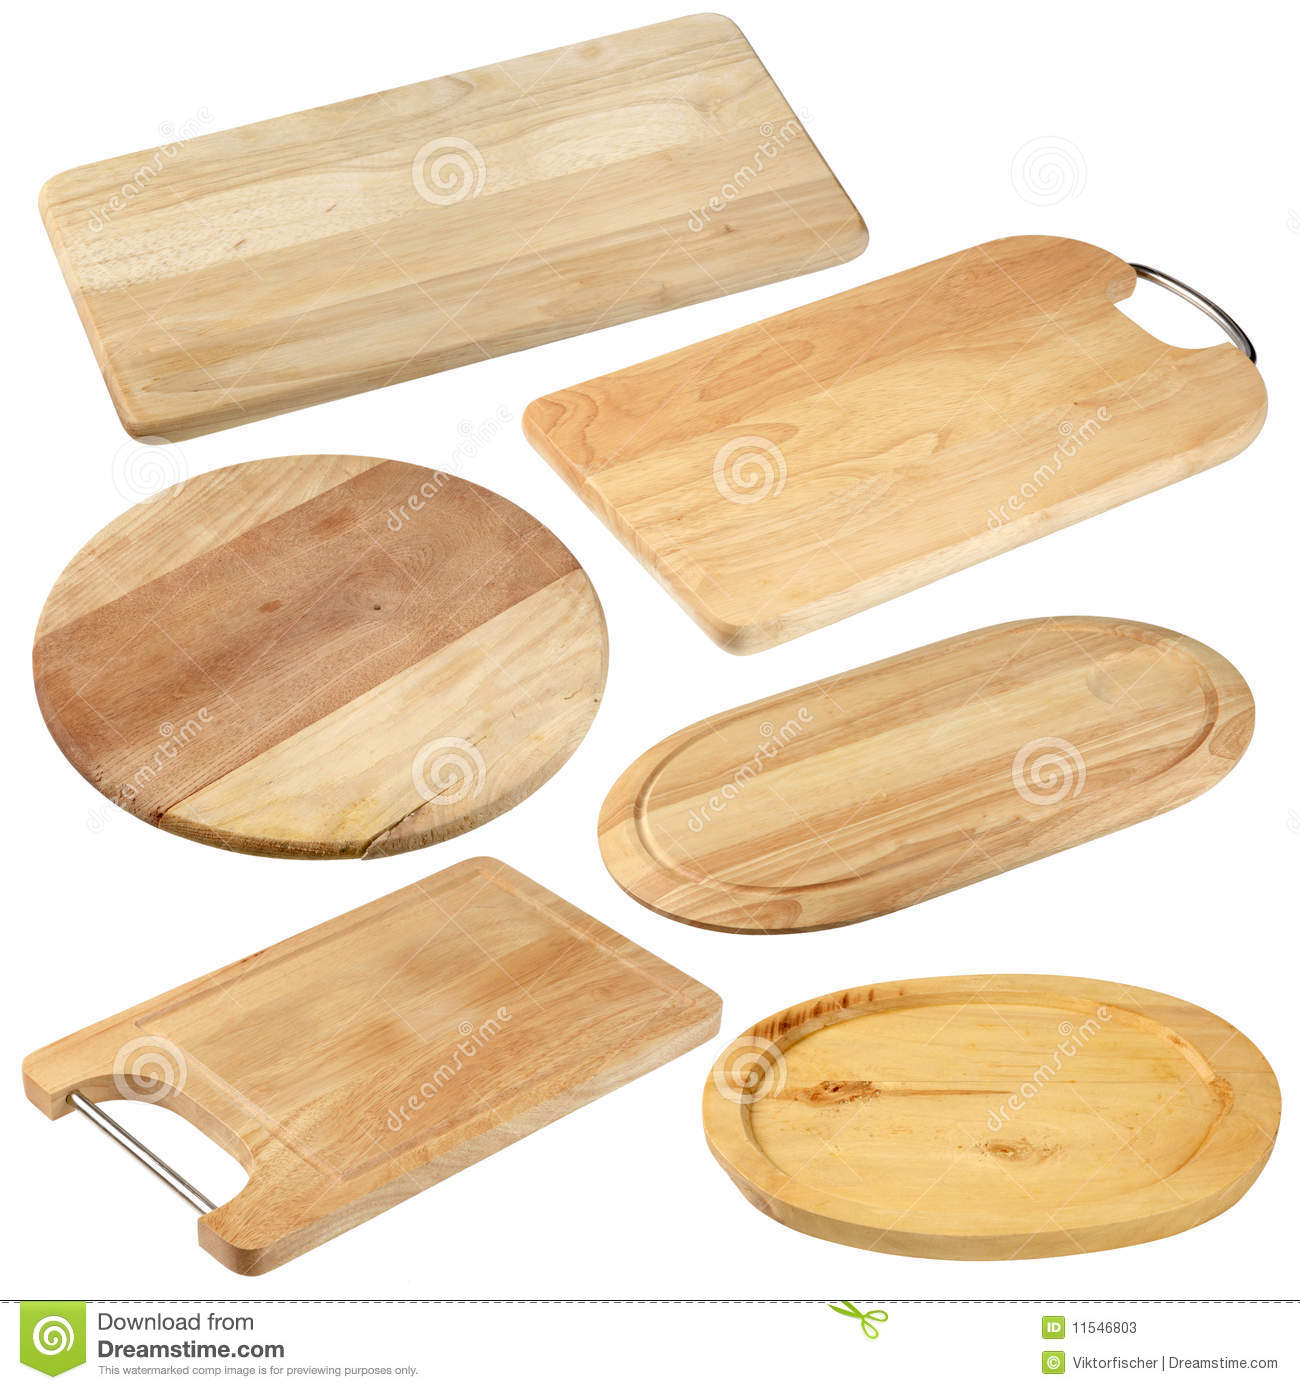 Different Types Of Cutting Boards Basket Weave Cutting Board Salad Bowl Finish Jpg Images